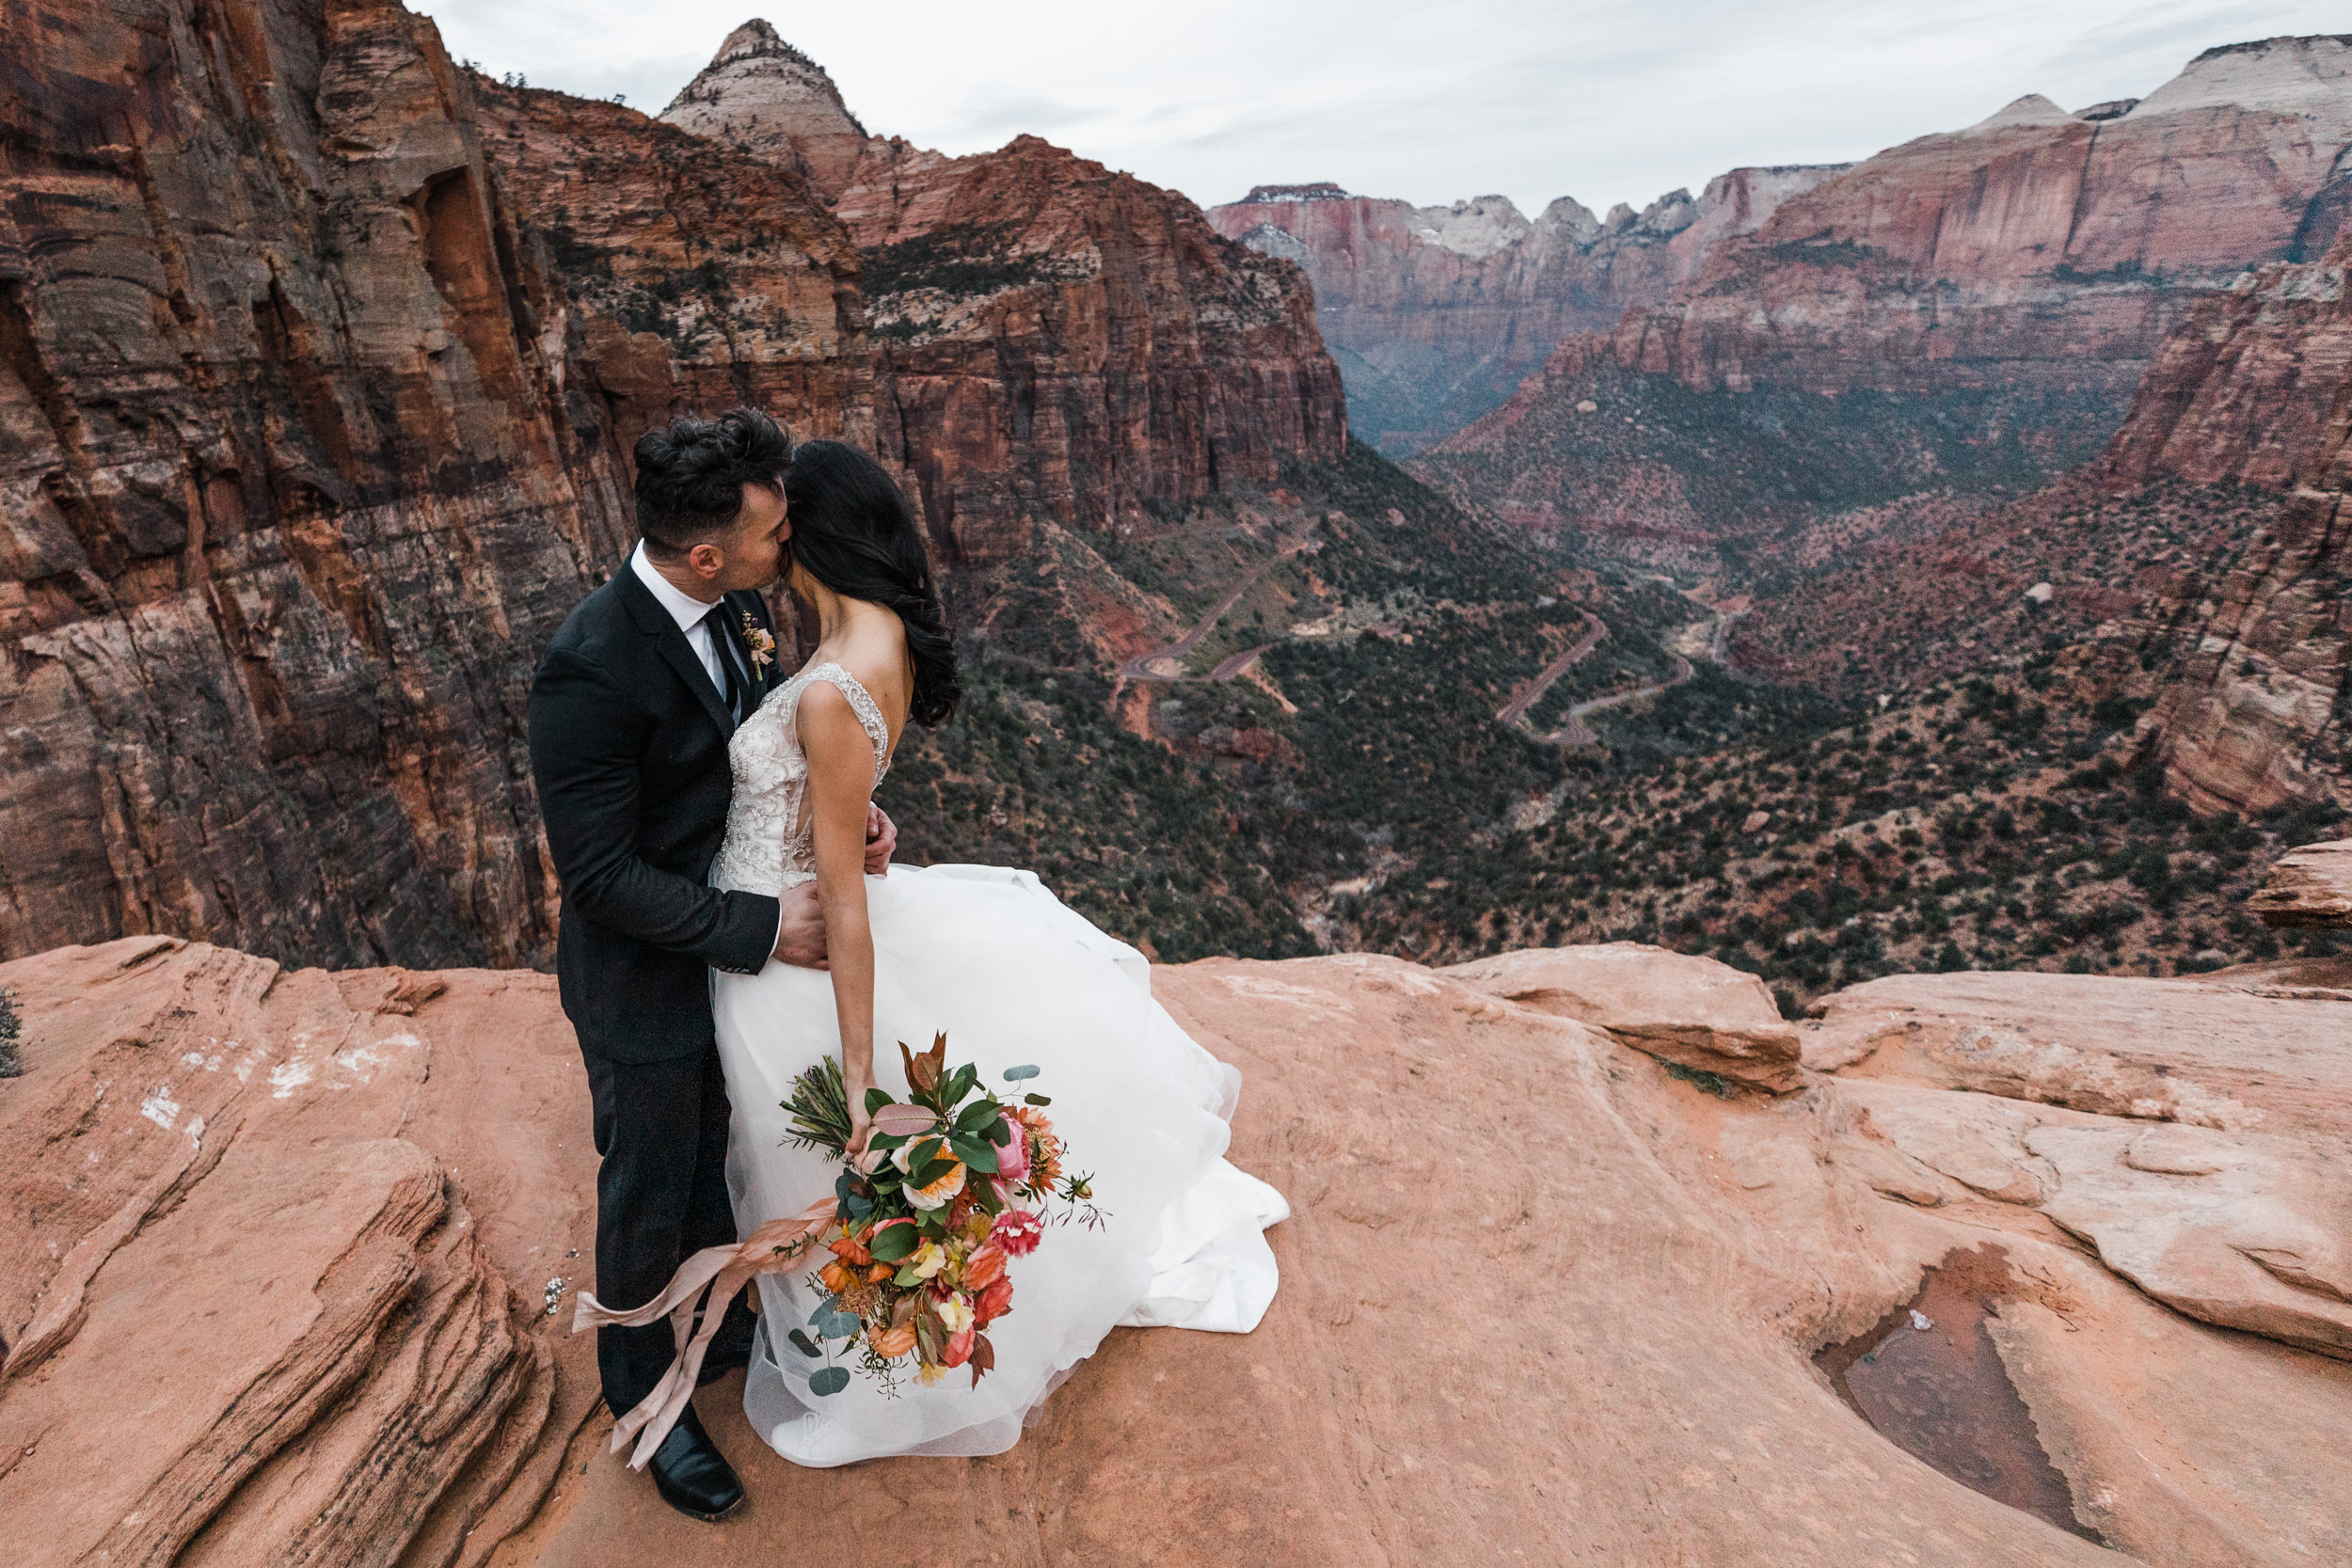 Wedding Photography in Zion